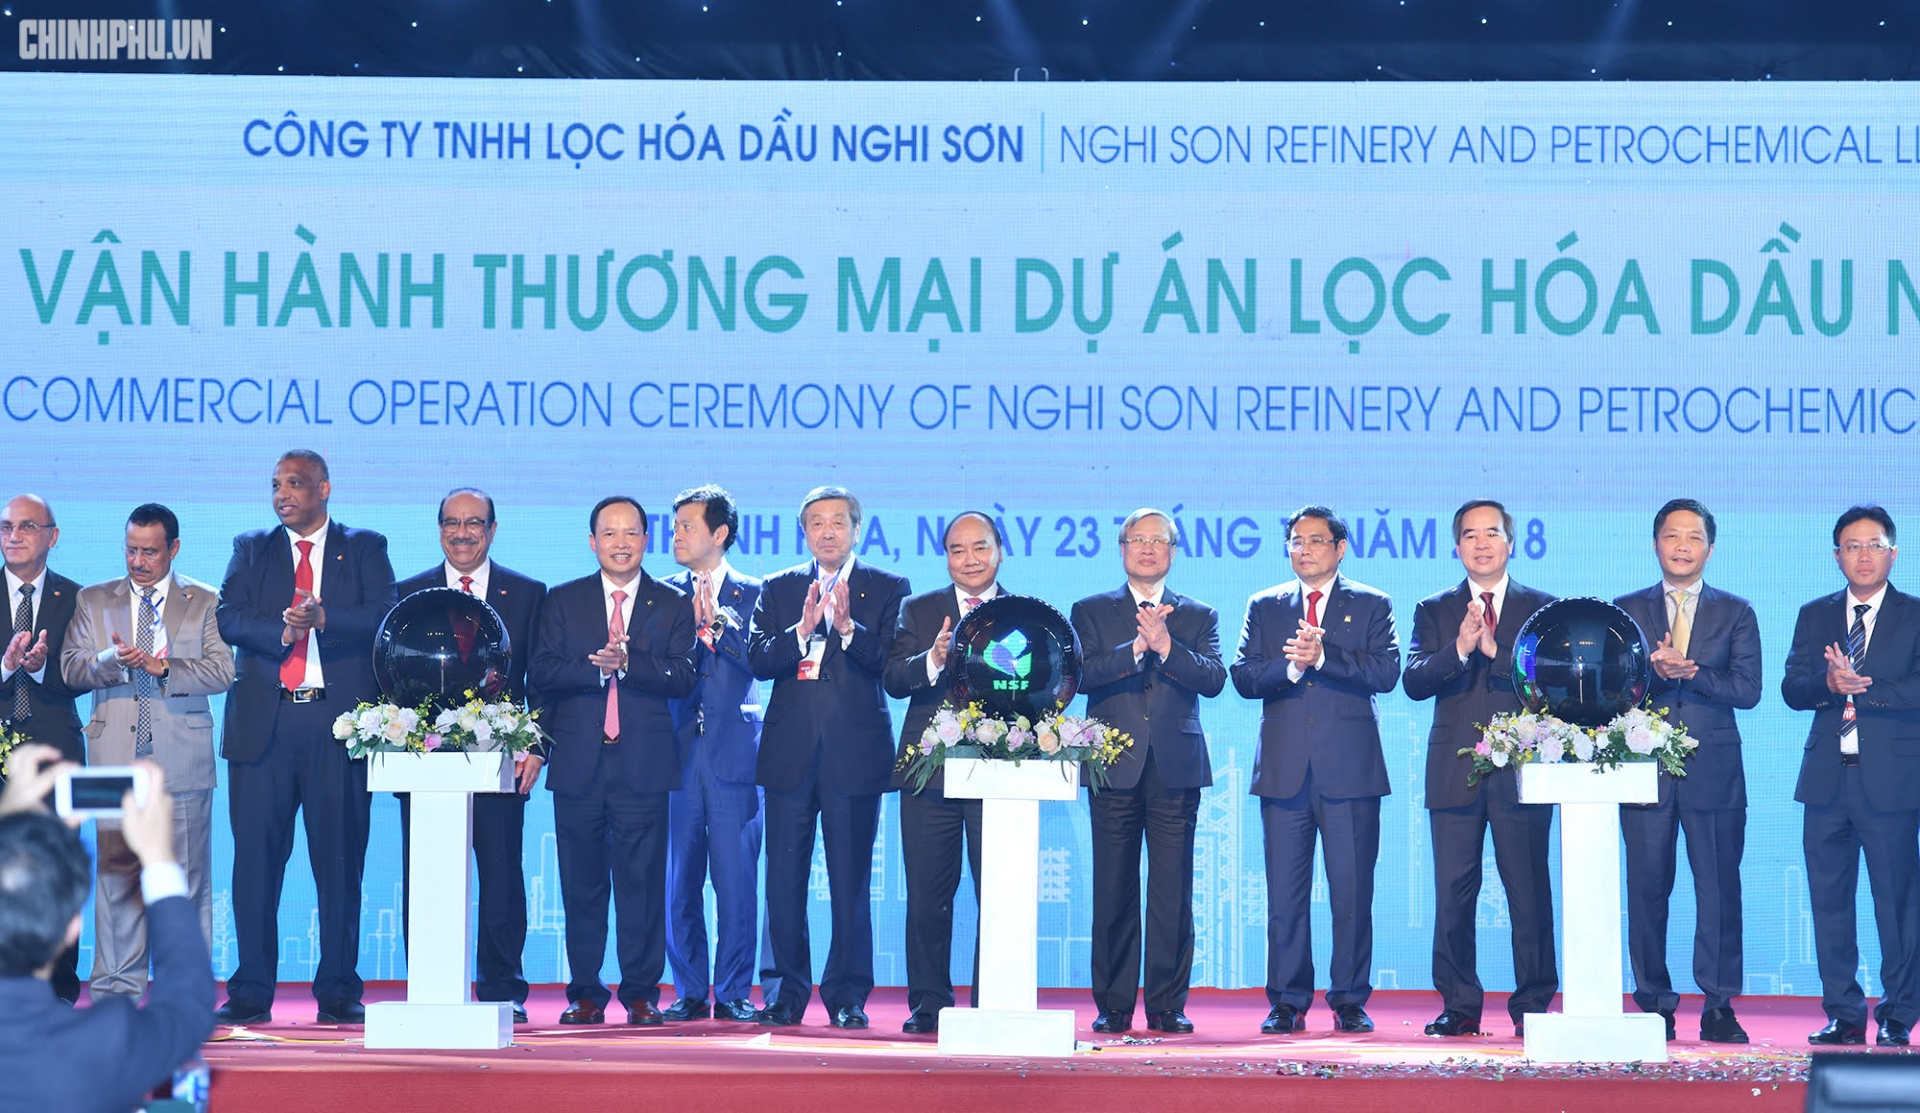 NSRP inaugurates Nghi Son Petrochemical Refinery